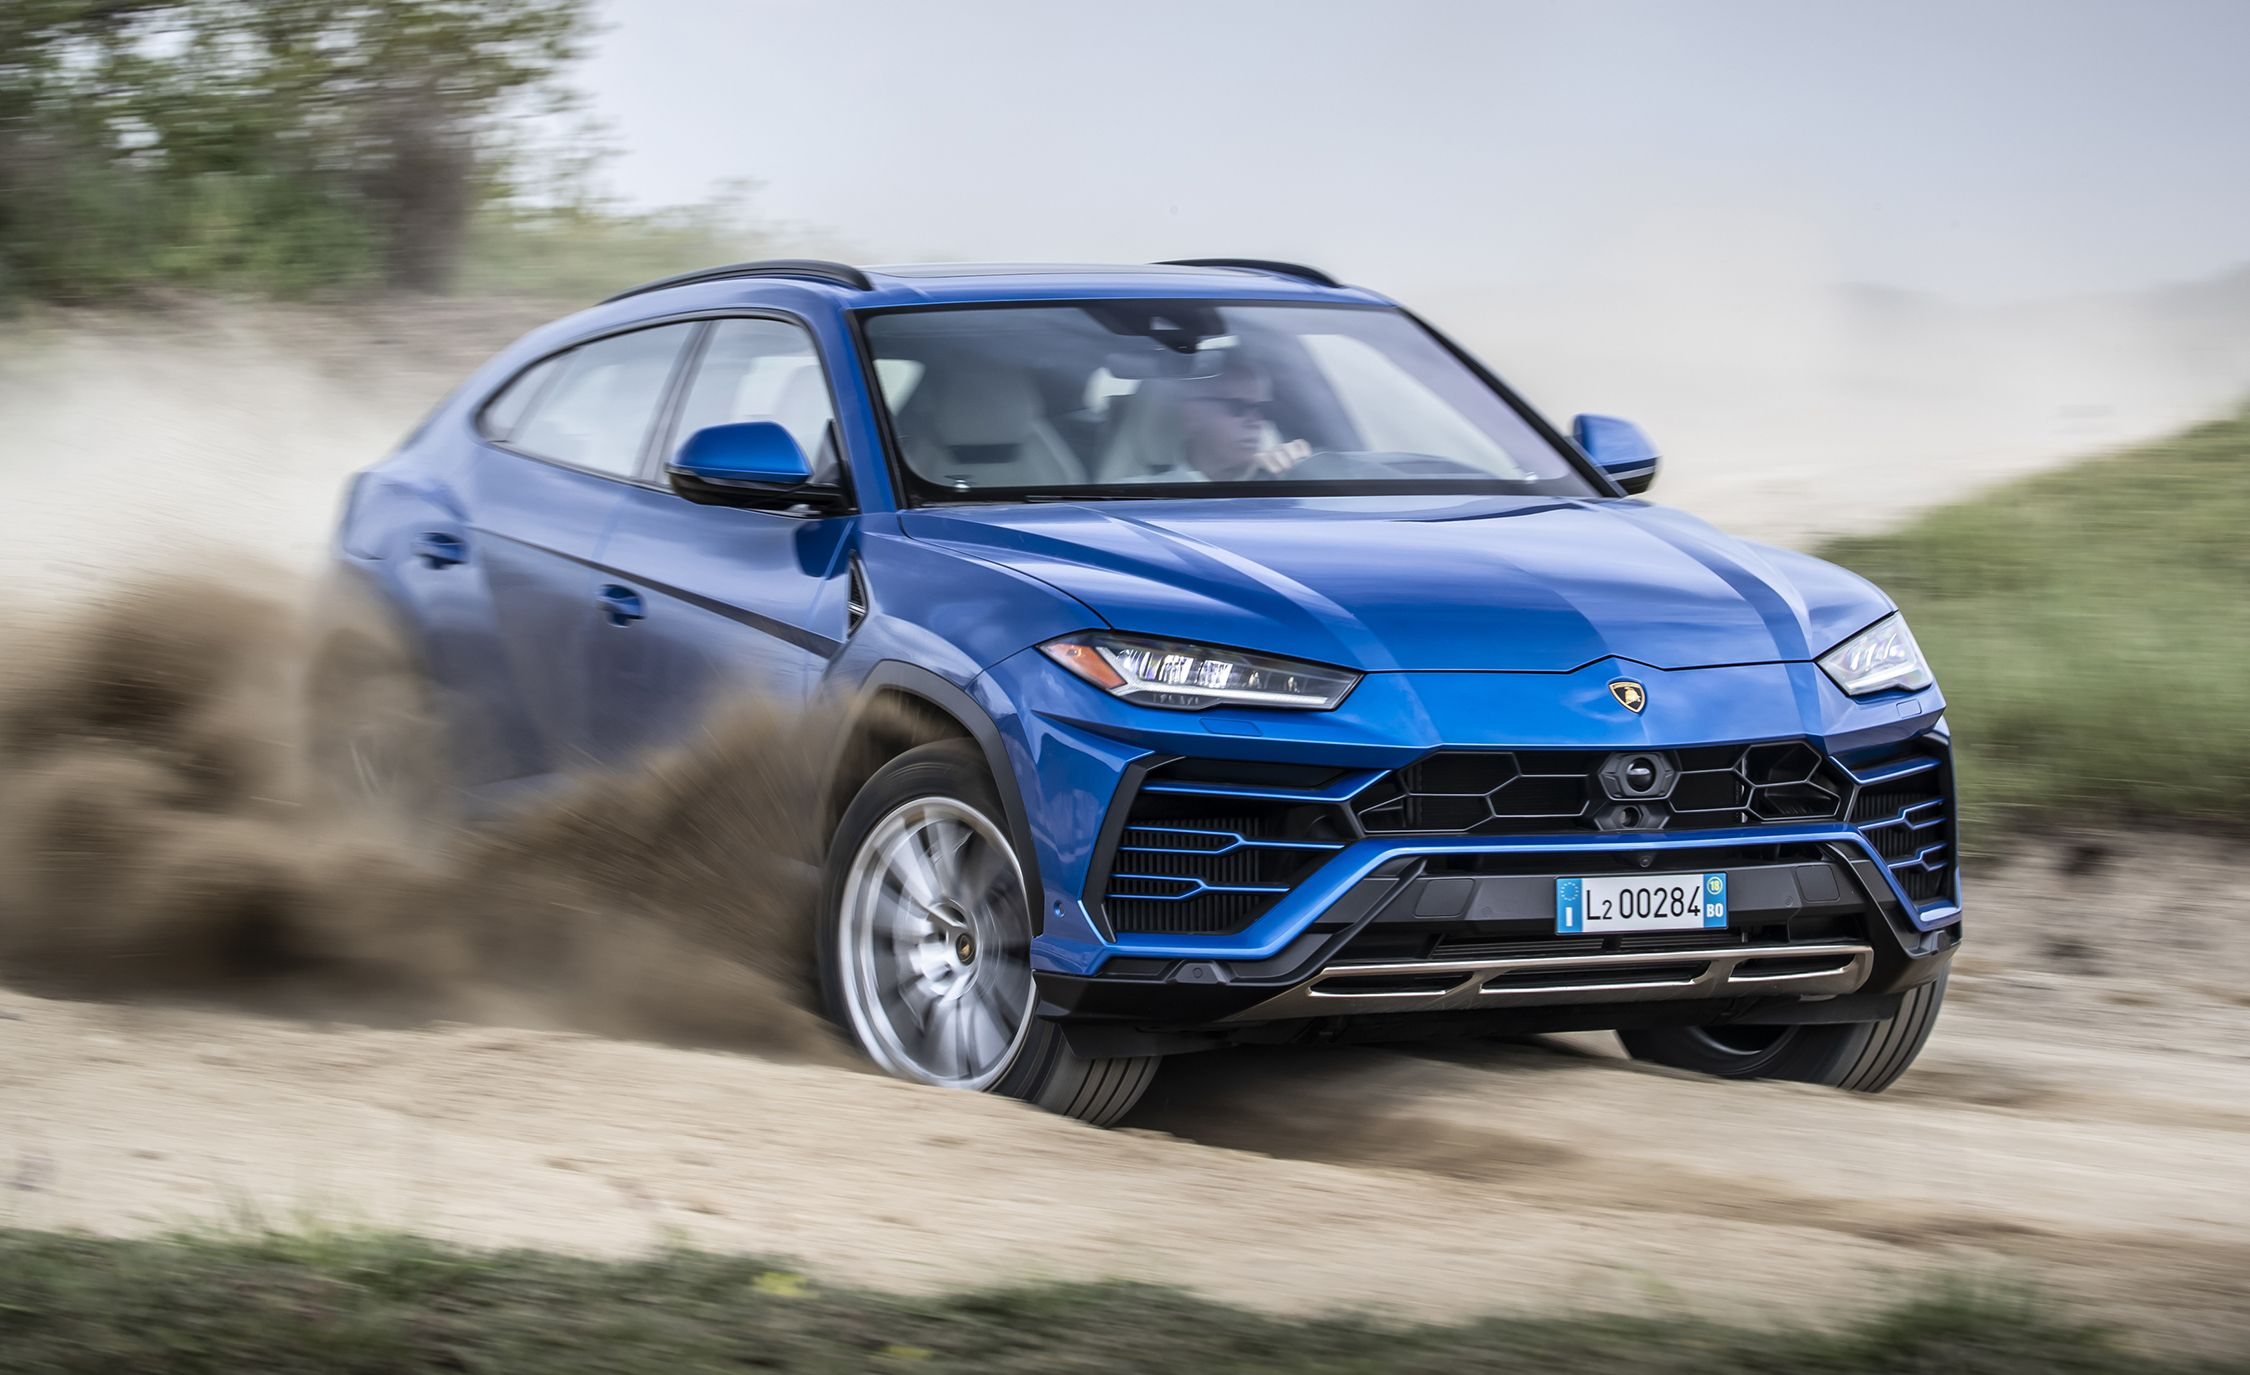 2019 lamborghini urus reviews | lamborghini urus price, photos, and